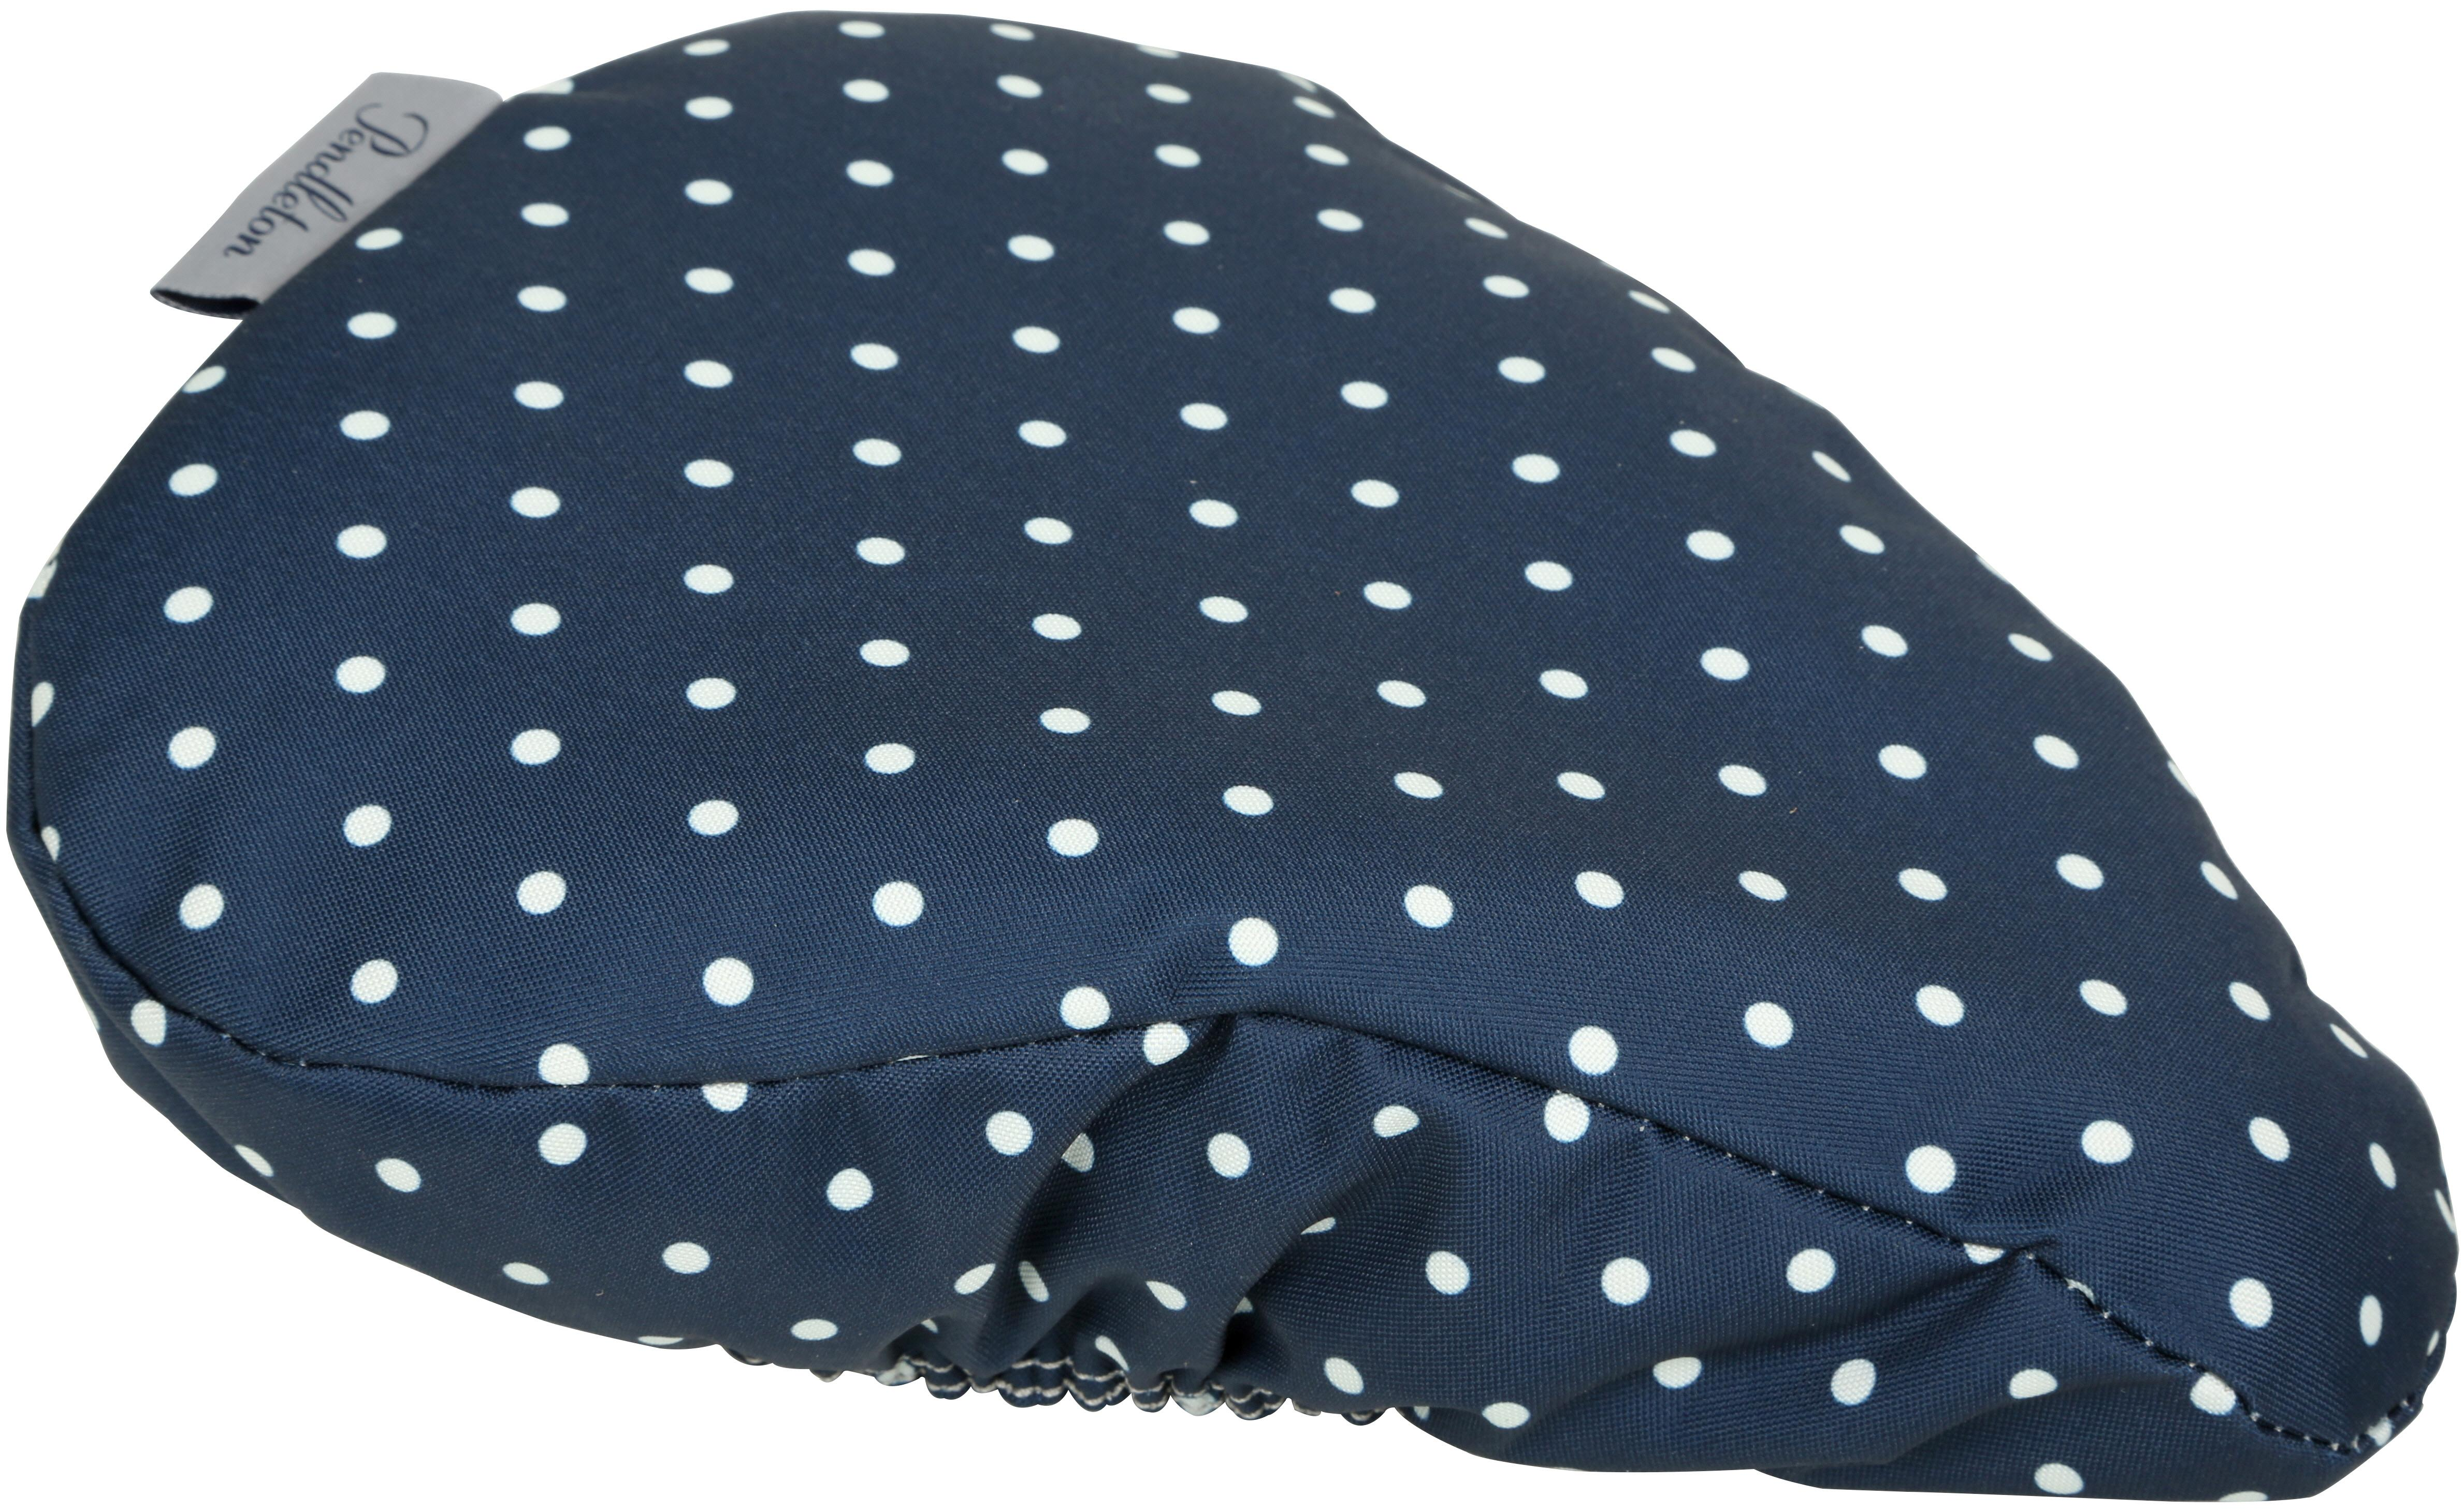 6f38f31533 Pendleton Bike Bicycle Seat Saddle Cover Navy Spot Water Resistant Cycling